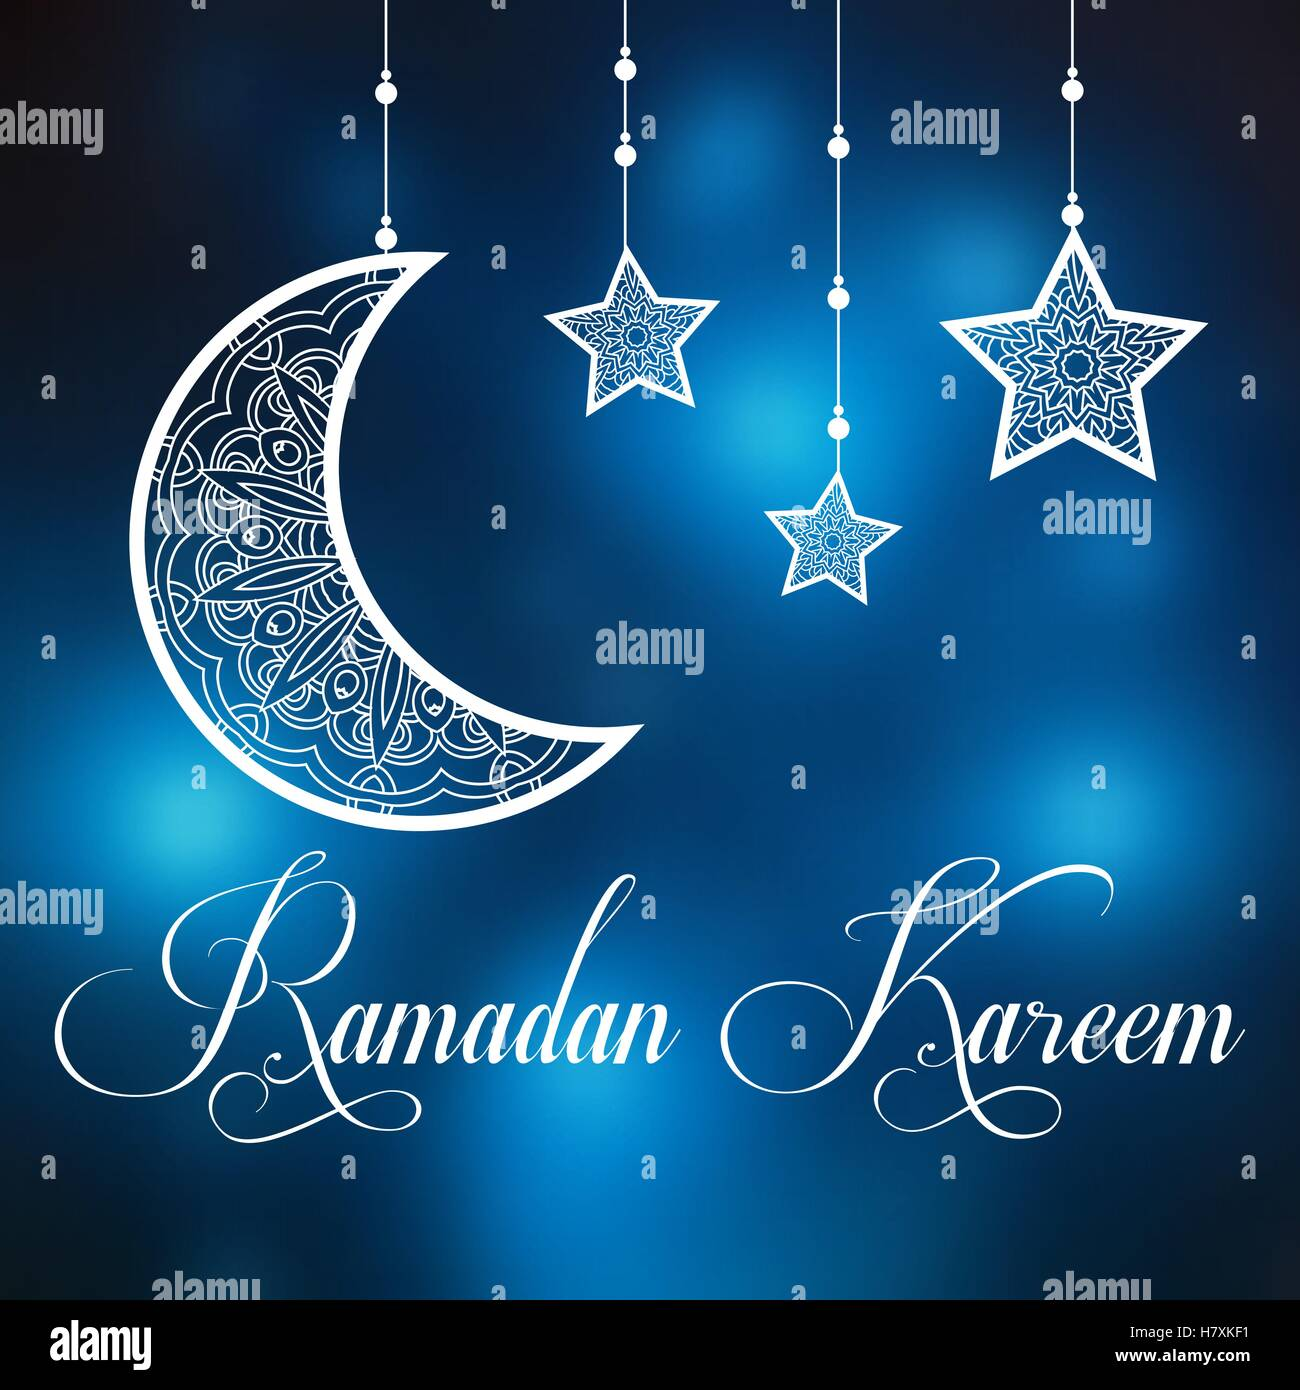 Ramadan kareem background with ornamental moon and stars greeting ramadan kareem background with ornamental moon and stars greeting card invitation for muslim community holy month on blurred m4hsunfo